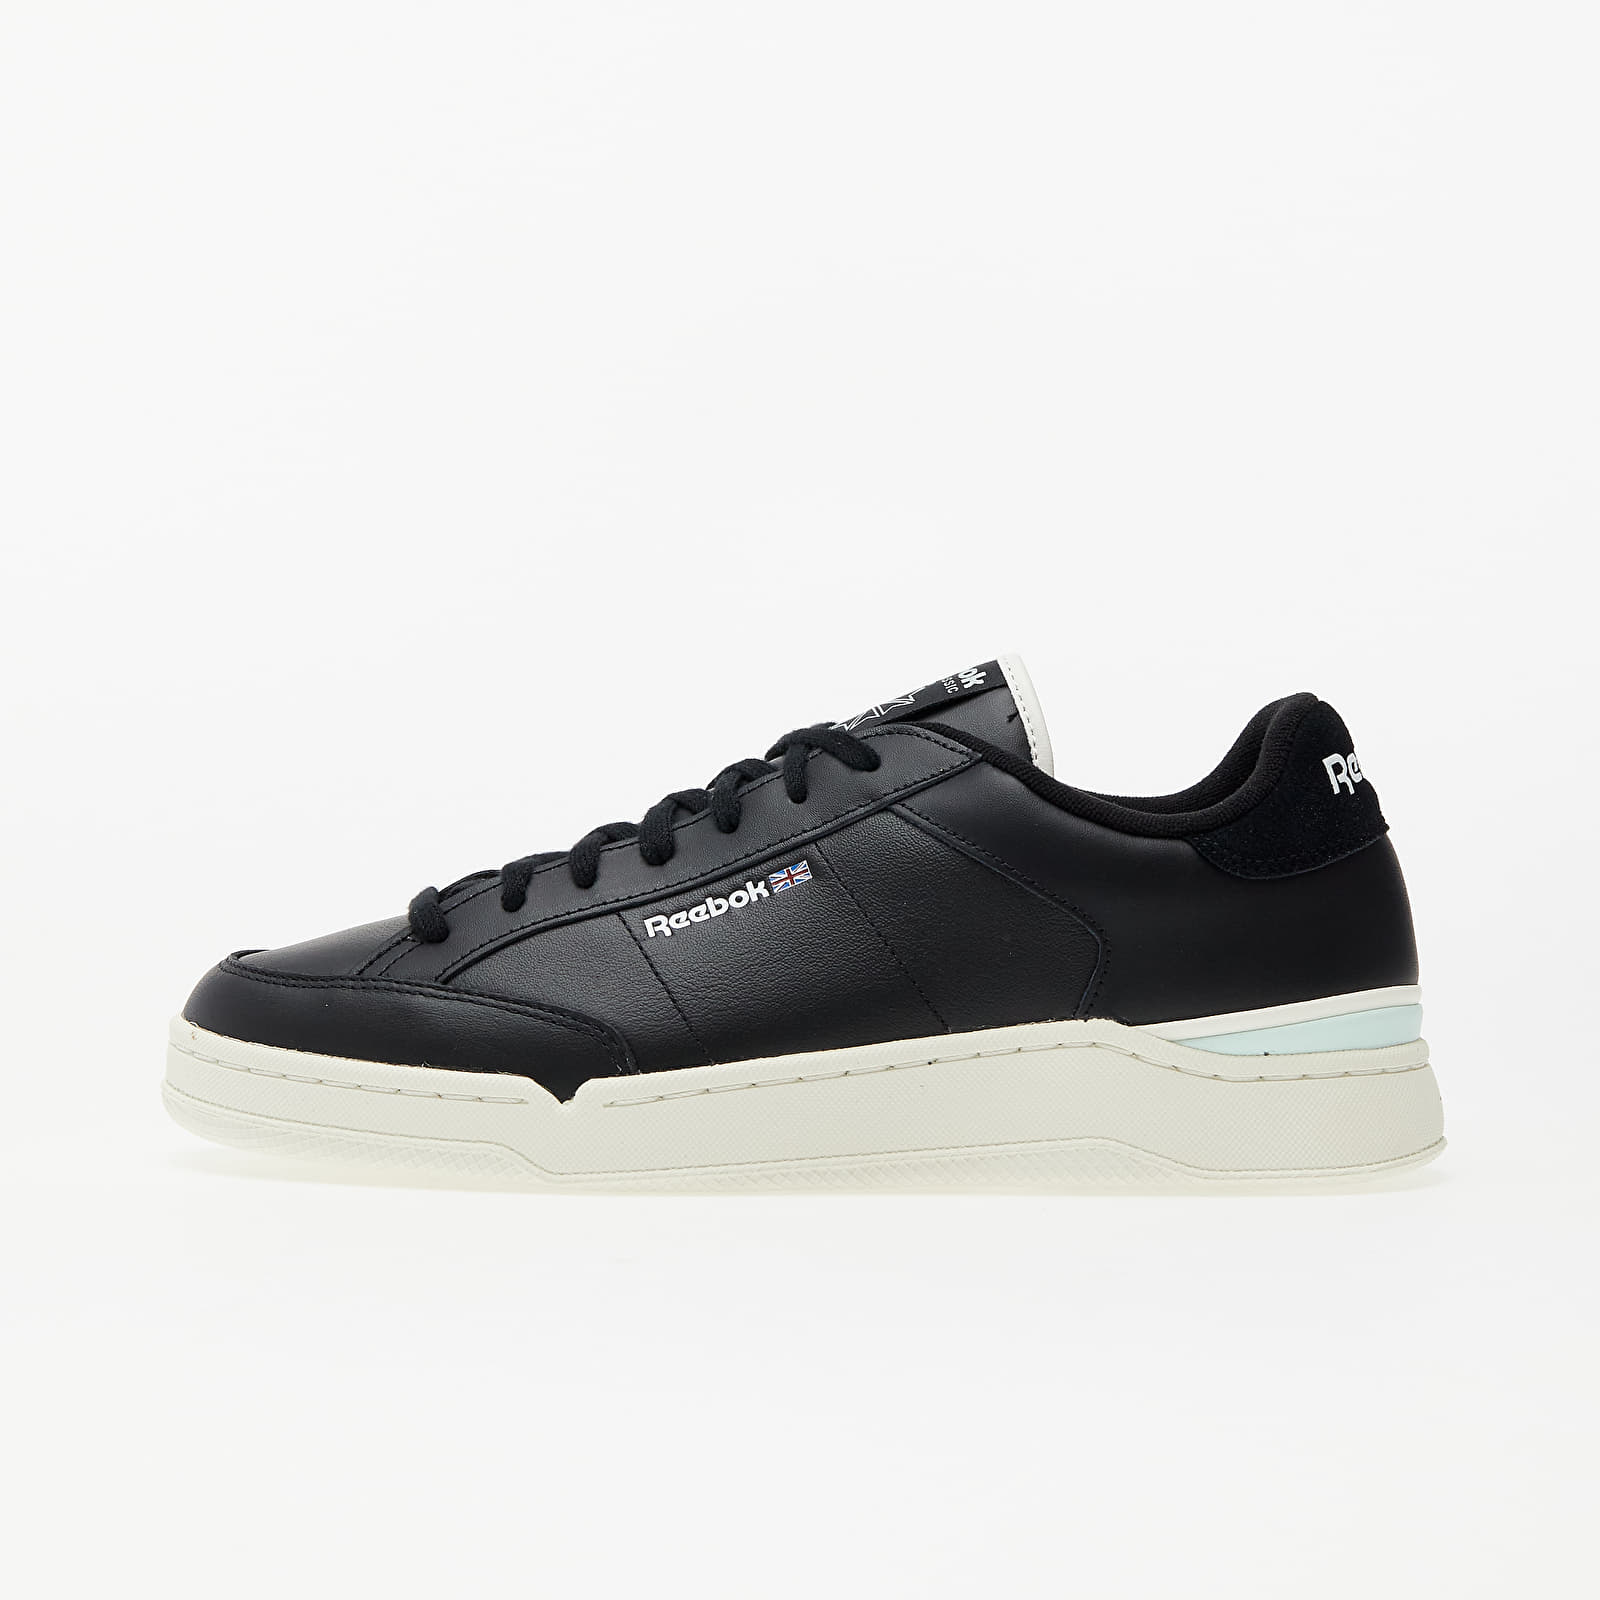 Zapatillas Hombre Reebok AD Court Core Black/ Aqua Dust/ Ftw White